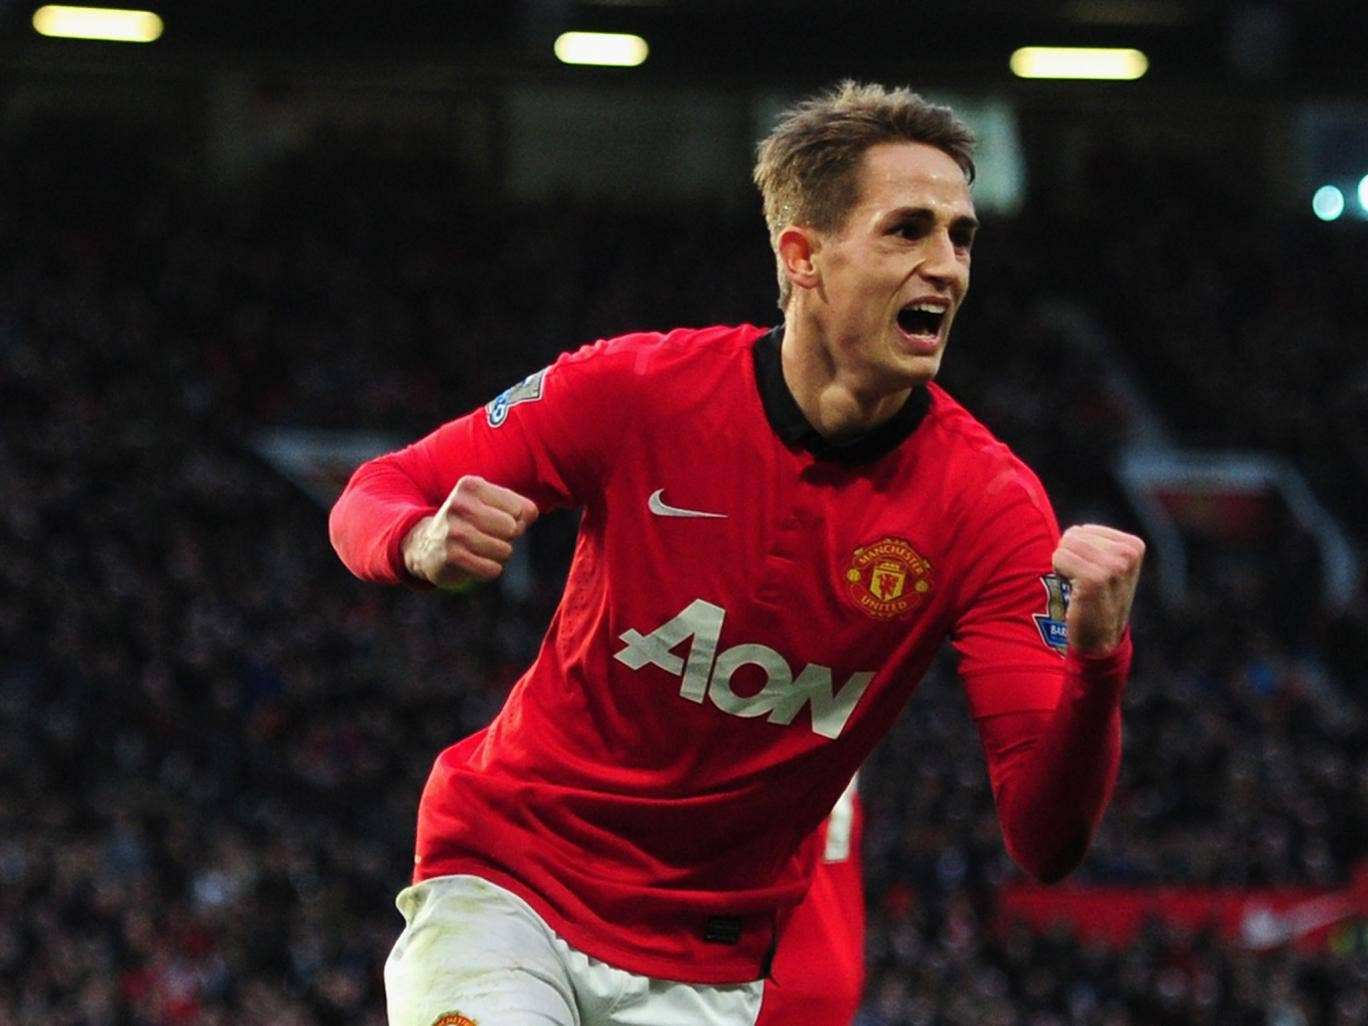 The rise of Adnan Januzaj is in line with United's tradition of giving youth its chance